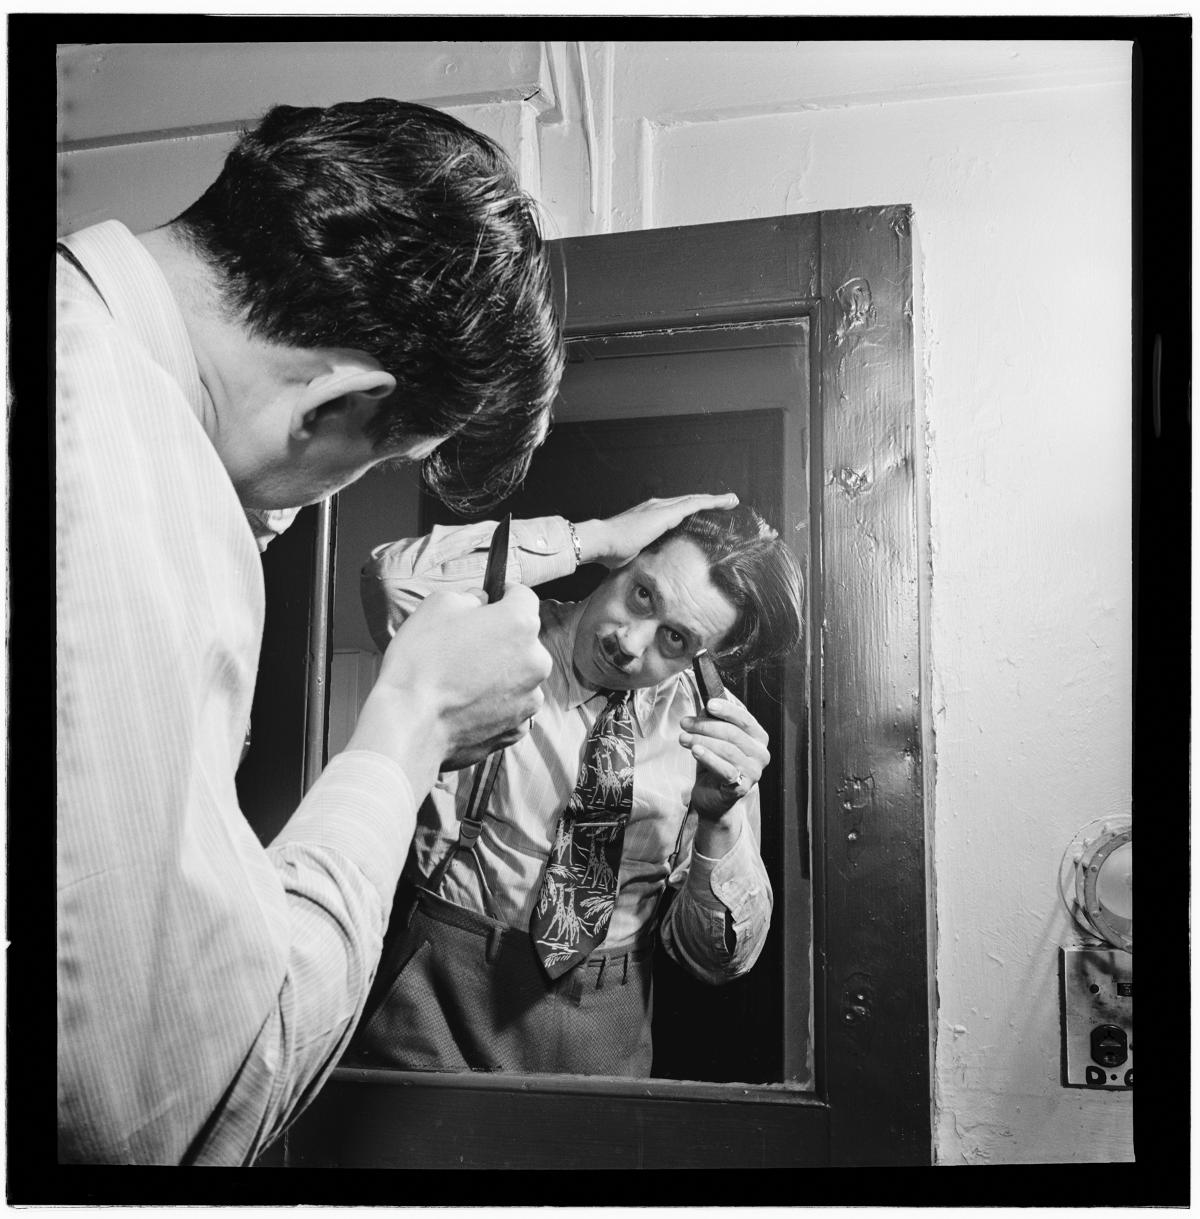 Calloway, looking into a mirror with his back to the viewer, shaving